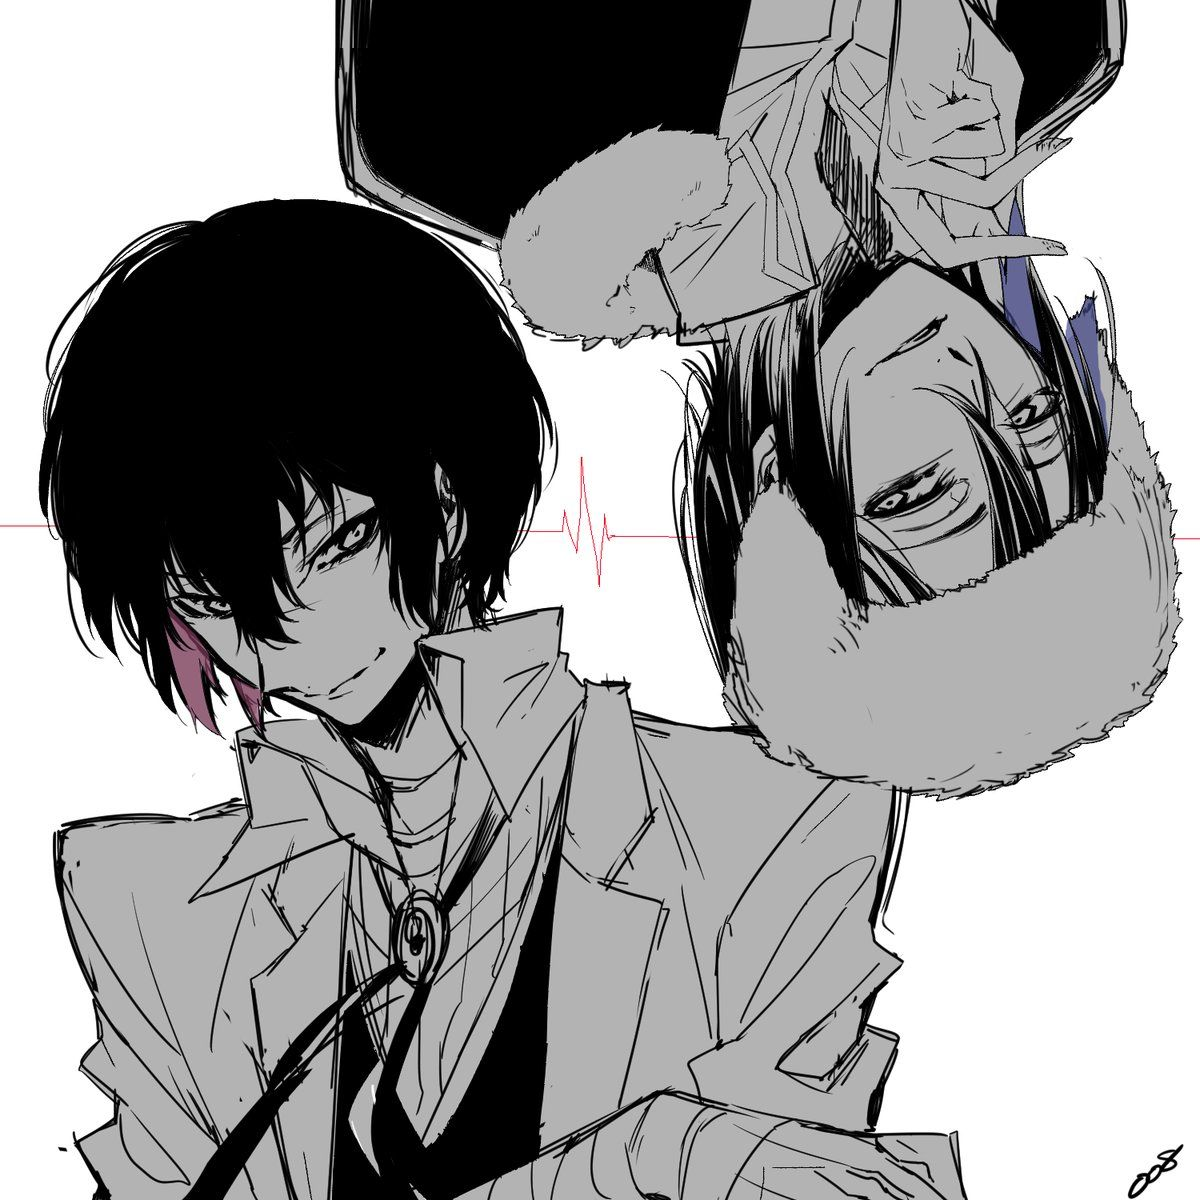 I swear, Dazai can be shipped with ANYBODY! He's been